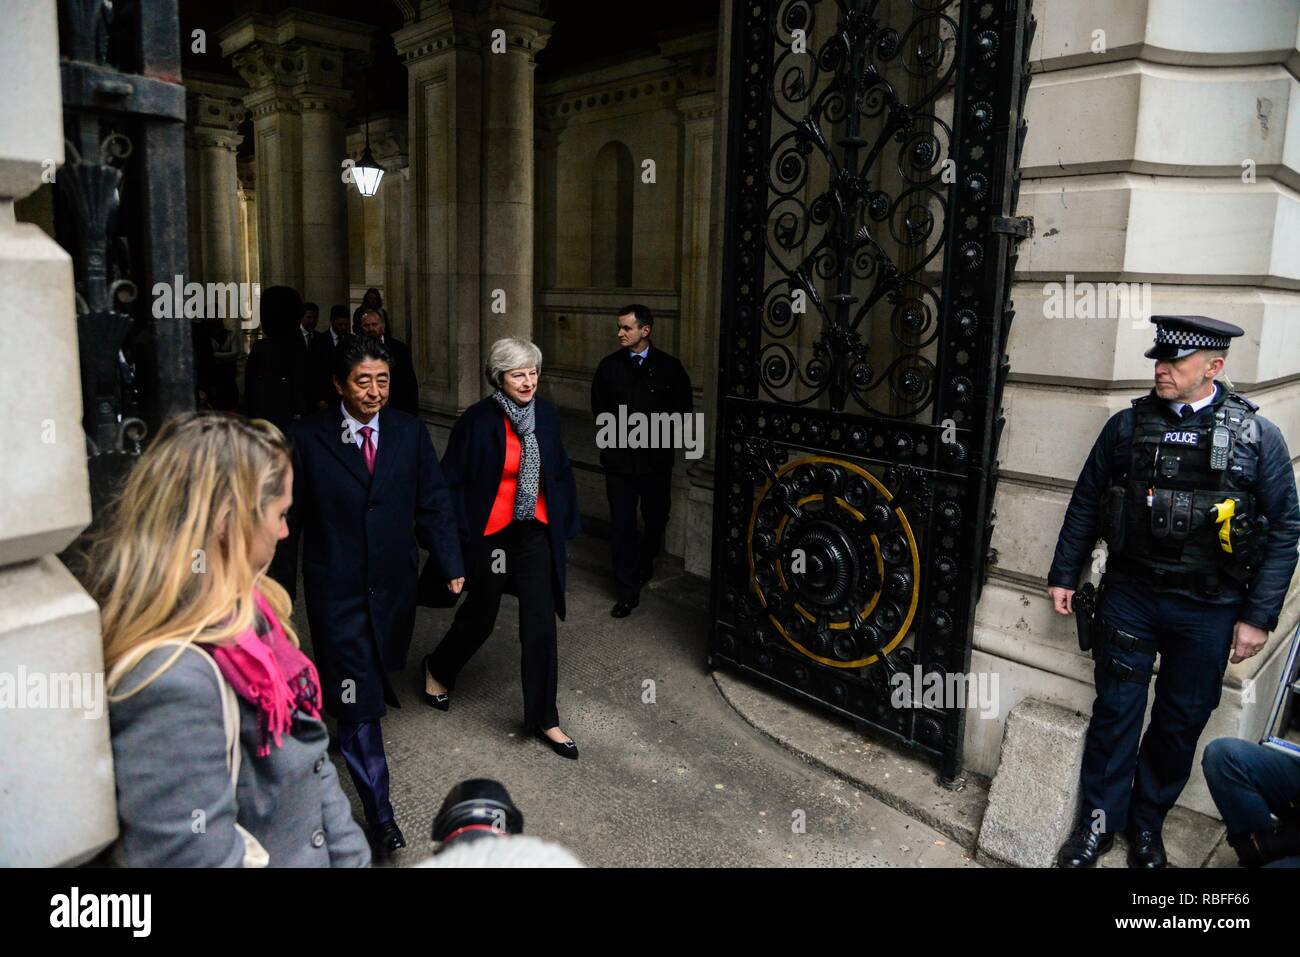 London, UK. 10th Jan, 2019. Prime Minister Theresa May and Japanese Prime Minister Shinzo Abe arrive at Downing Street ahead of bilateral talks. Credit: claire doherty/Alamy Live News Stock Photo